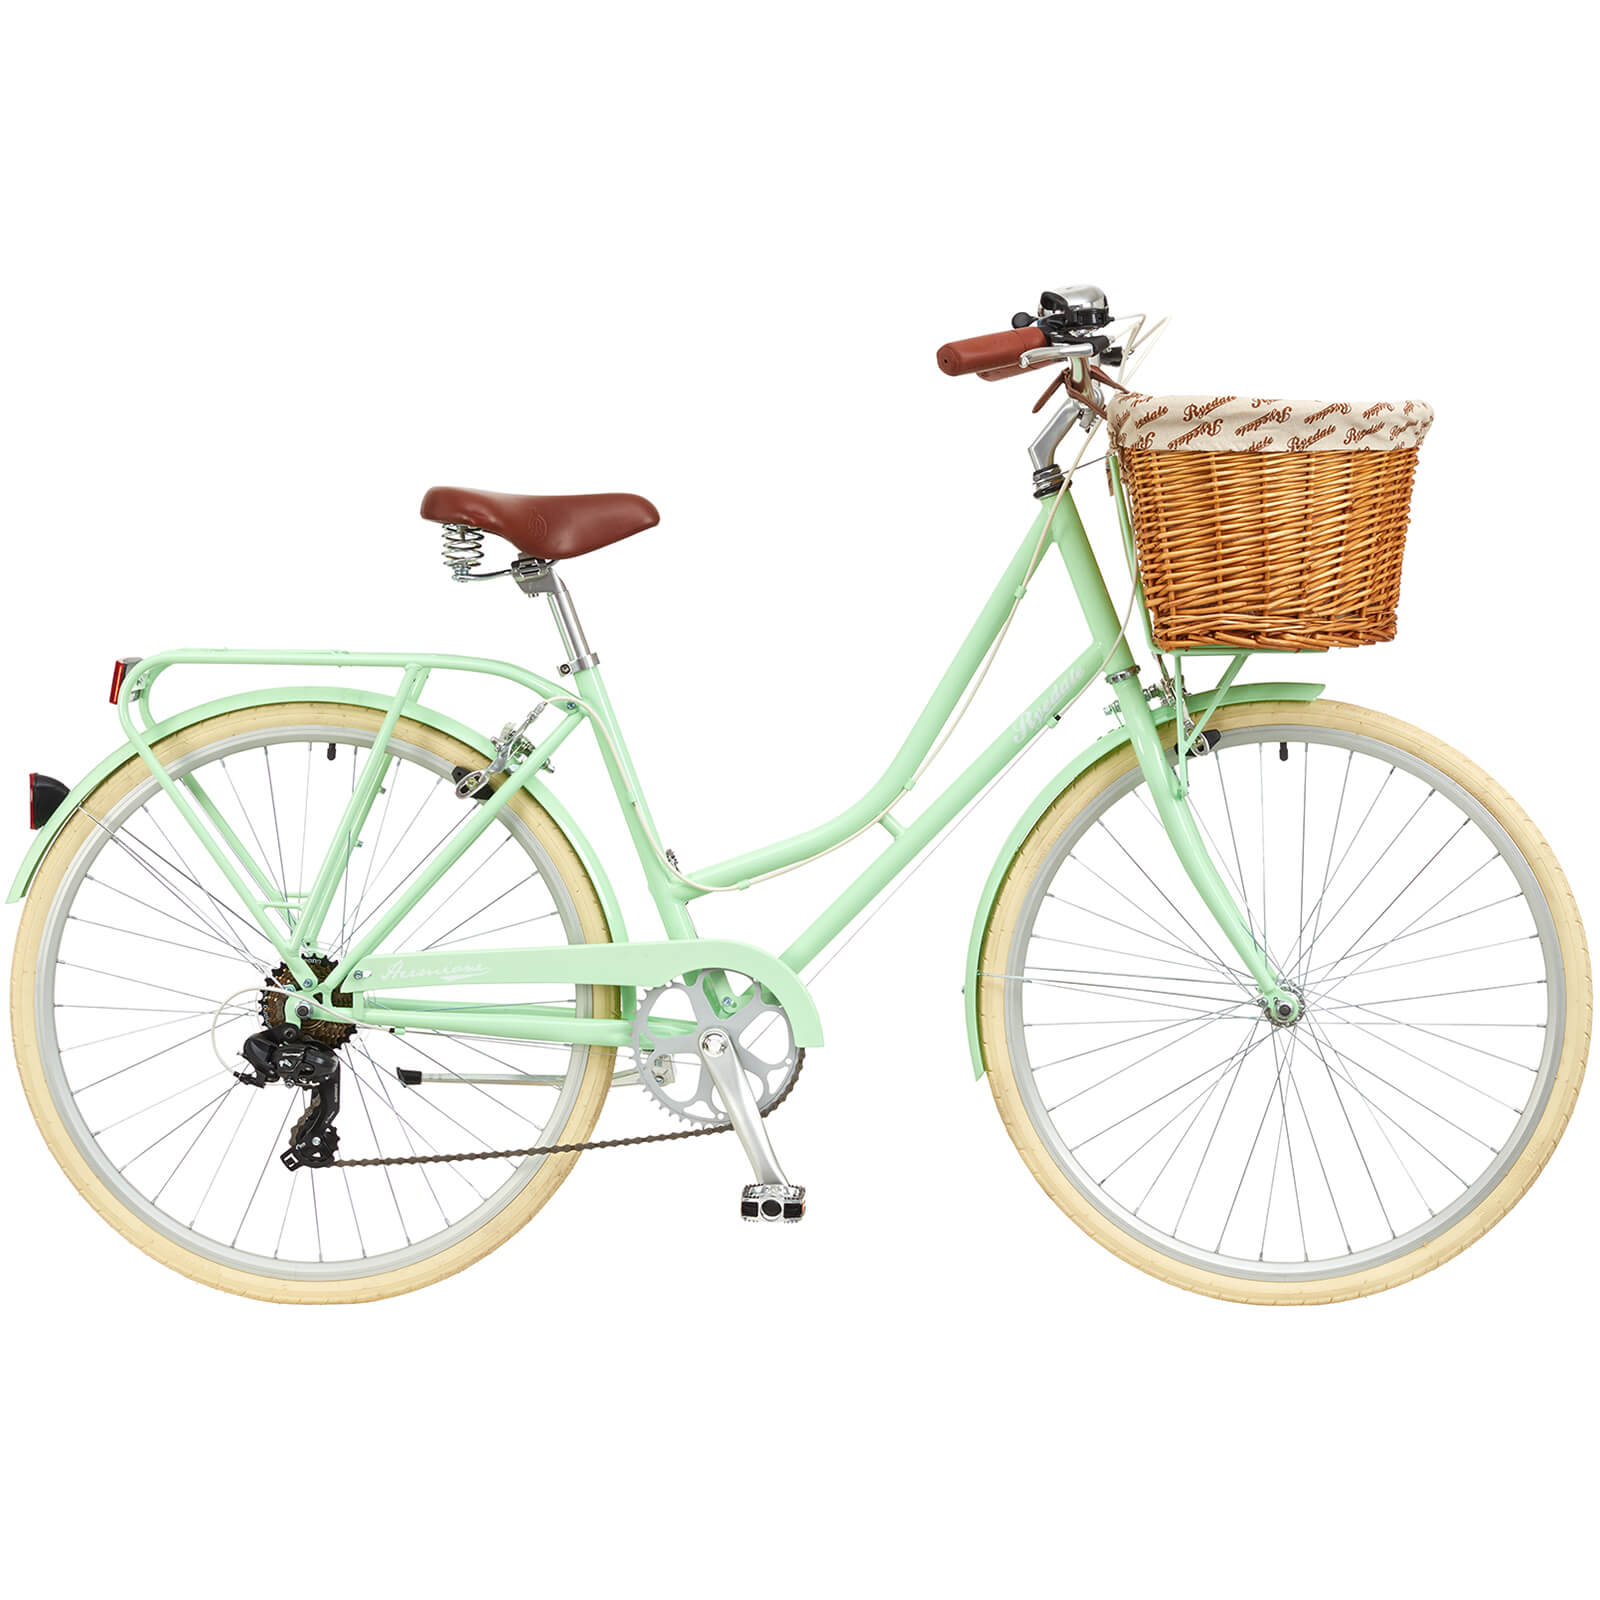 "Ryedale Hermione Ladies 26"" Wheel 7 Speed Traditional Bike Peppermint (RYD27-26)"